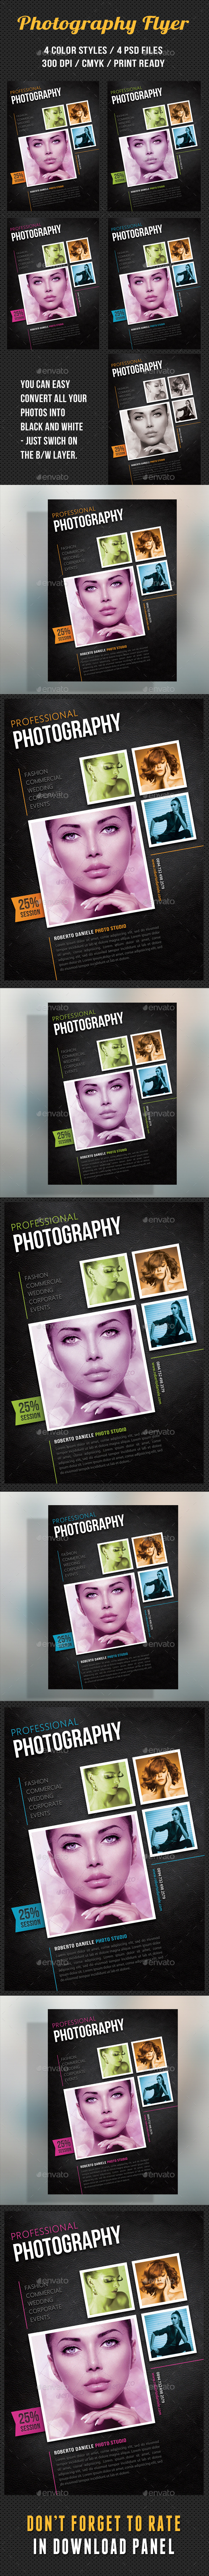 Photography Studio Flyer 11 - Corporate Flyers